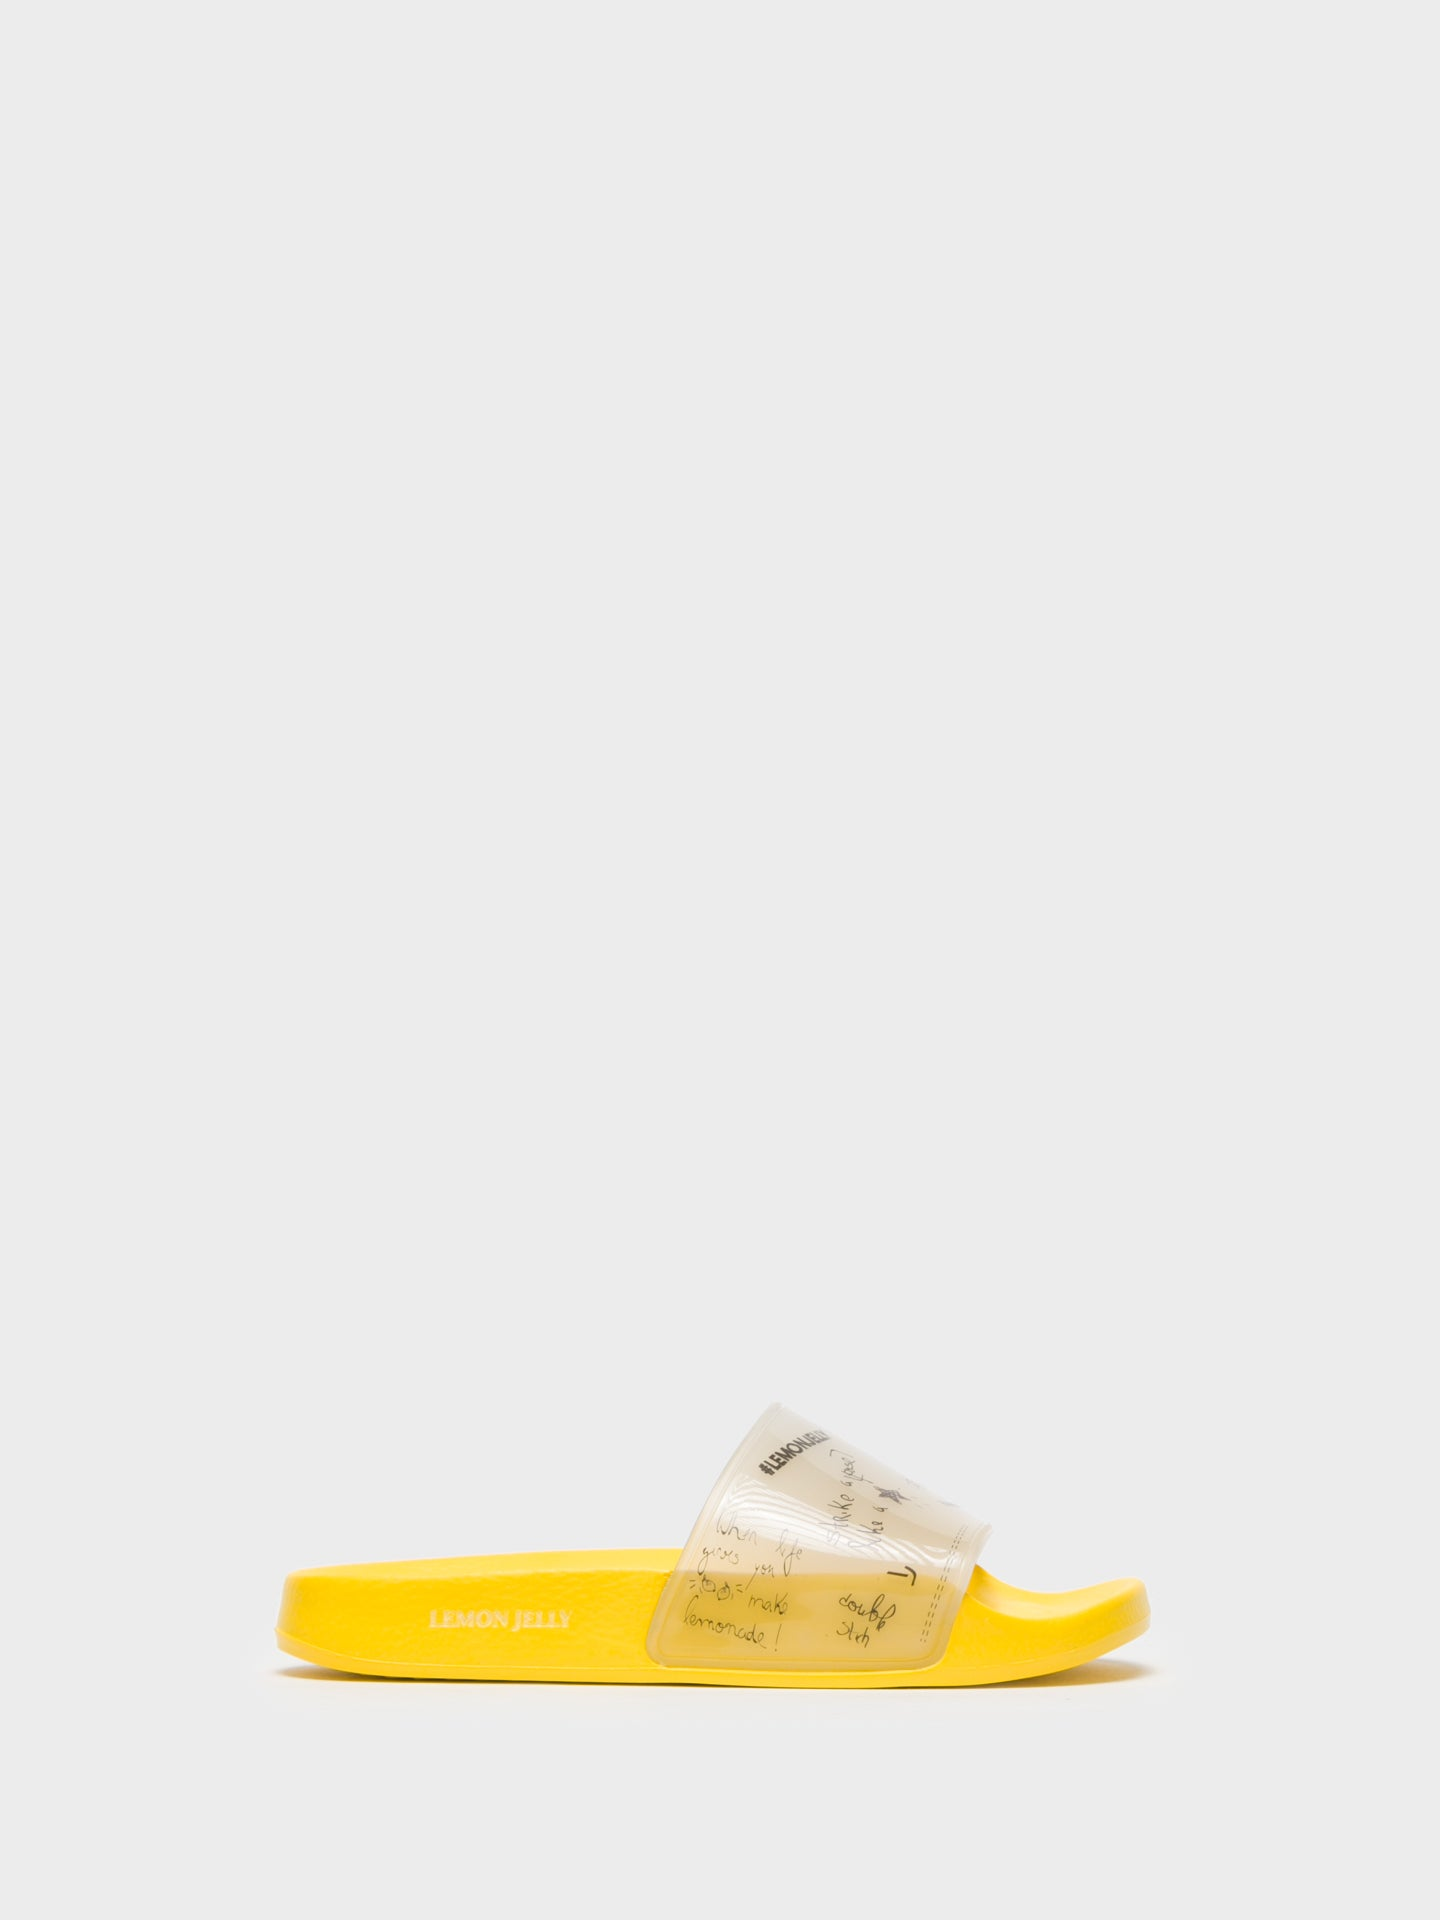 Lemon Jelly Yellow Casual Slides